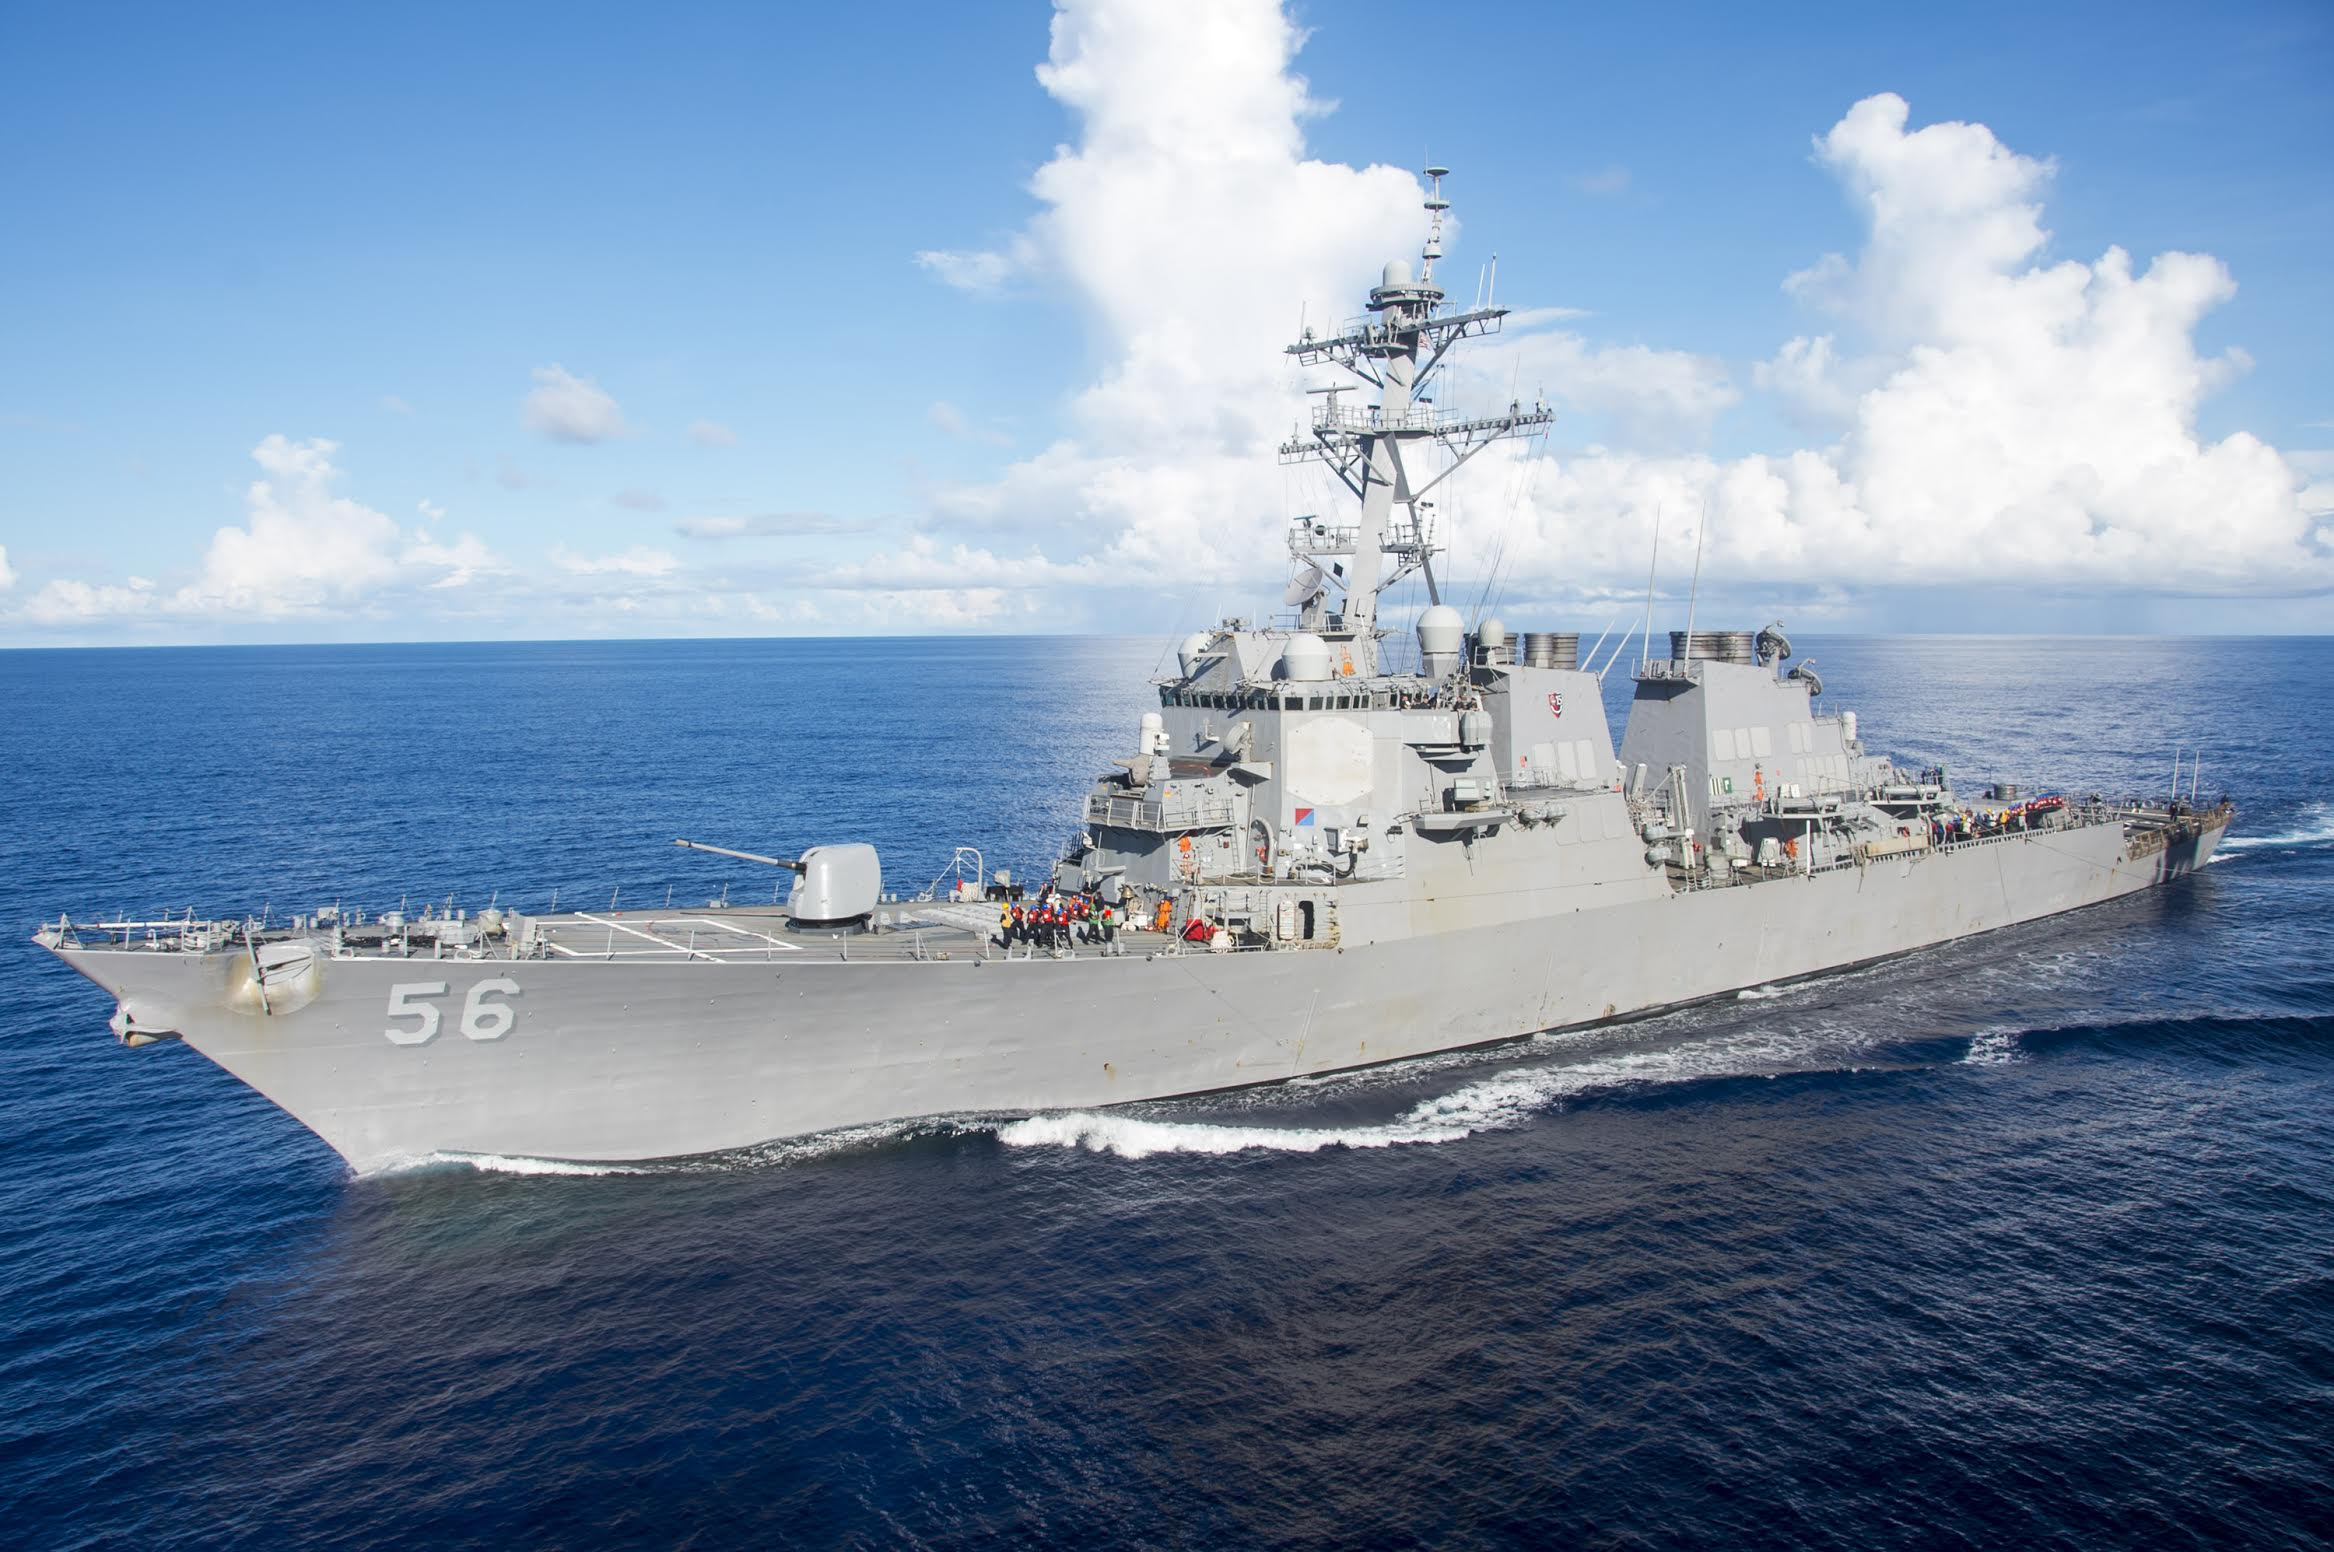 Official U.S. Navy file photo of the Arleigh Burke-class guided-missile destroyer USS John S. McCain DDG 56. Photo courtesy: US Navy